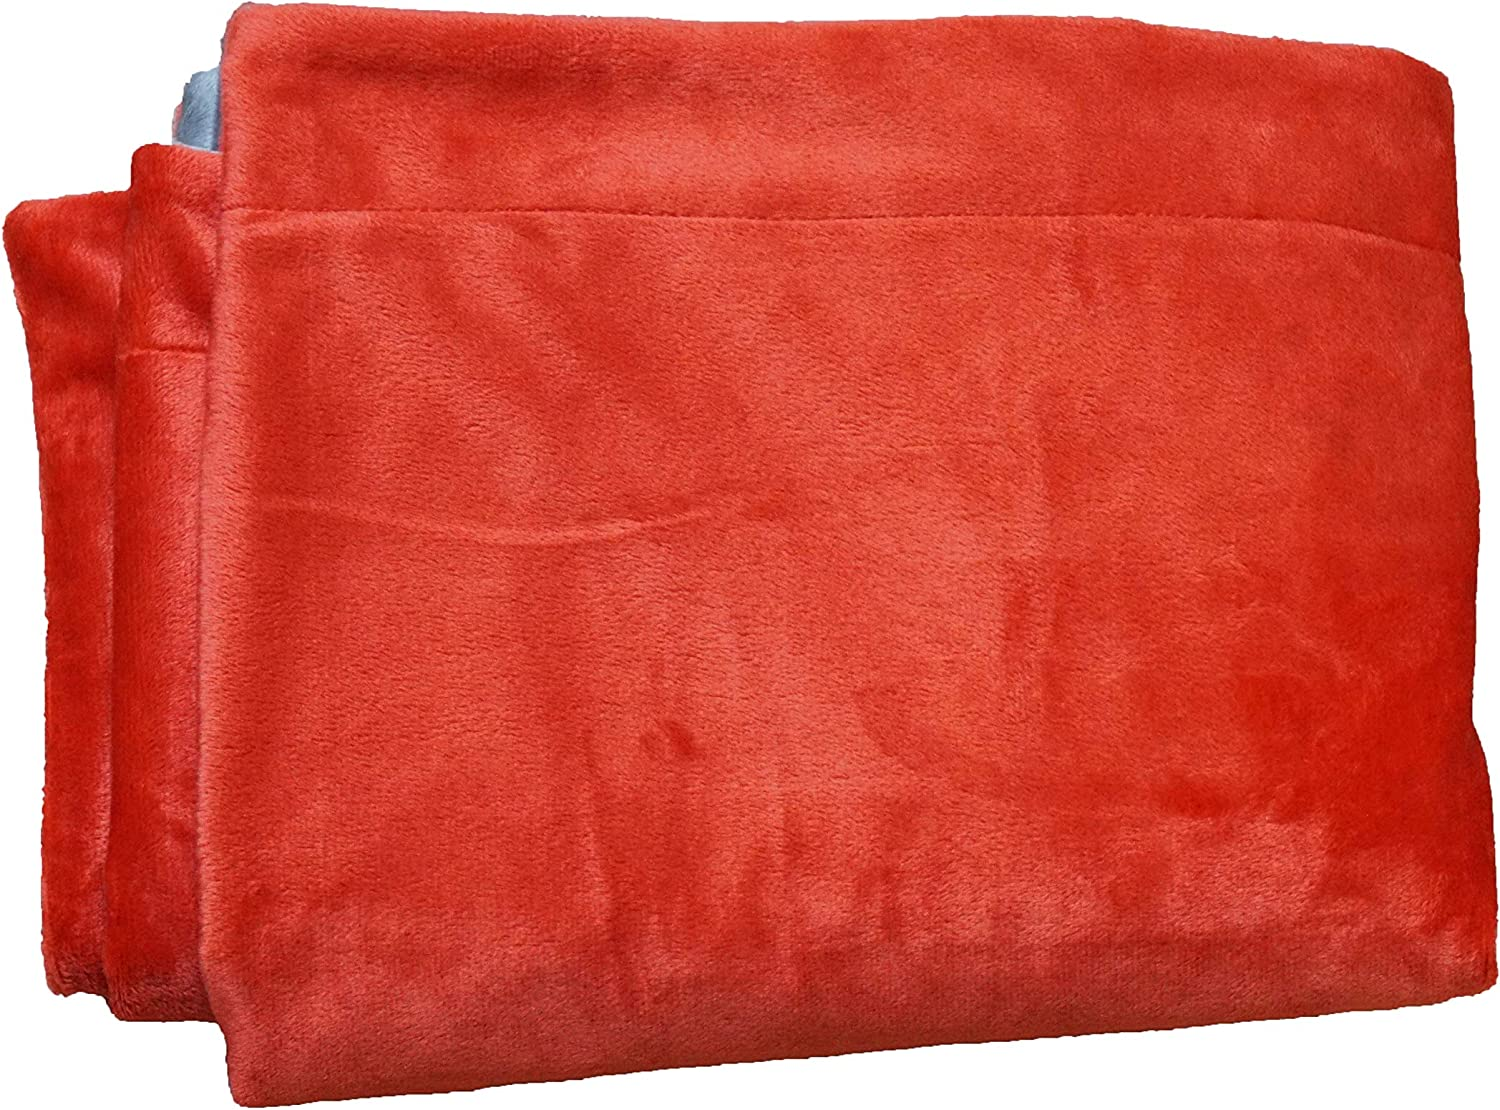 PetBed4Less Premium 100% Waterproof Silky Soft Throw Dog Blanket Cat Blanket with Reversible Duo Layers : Pet Supplies